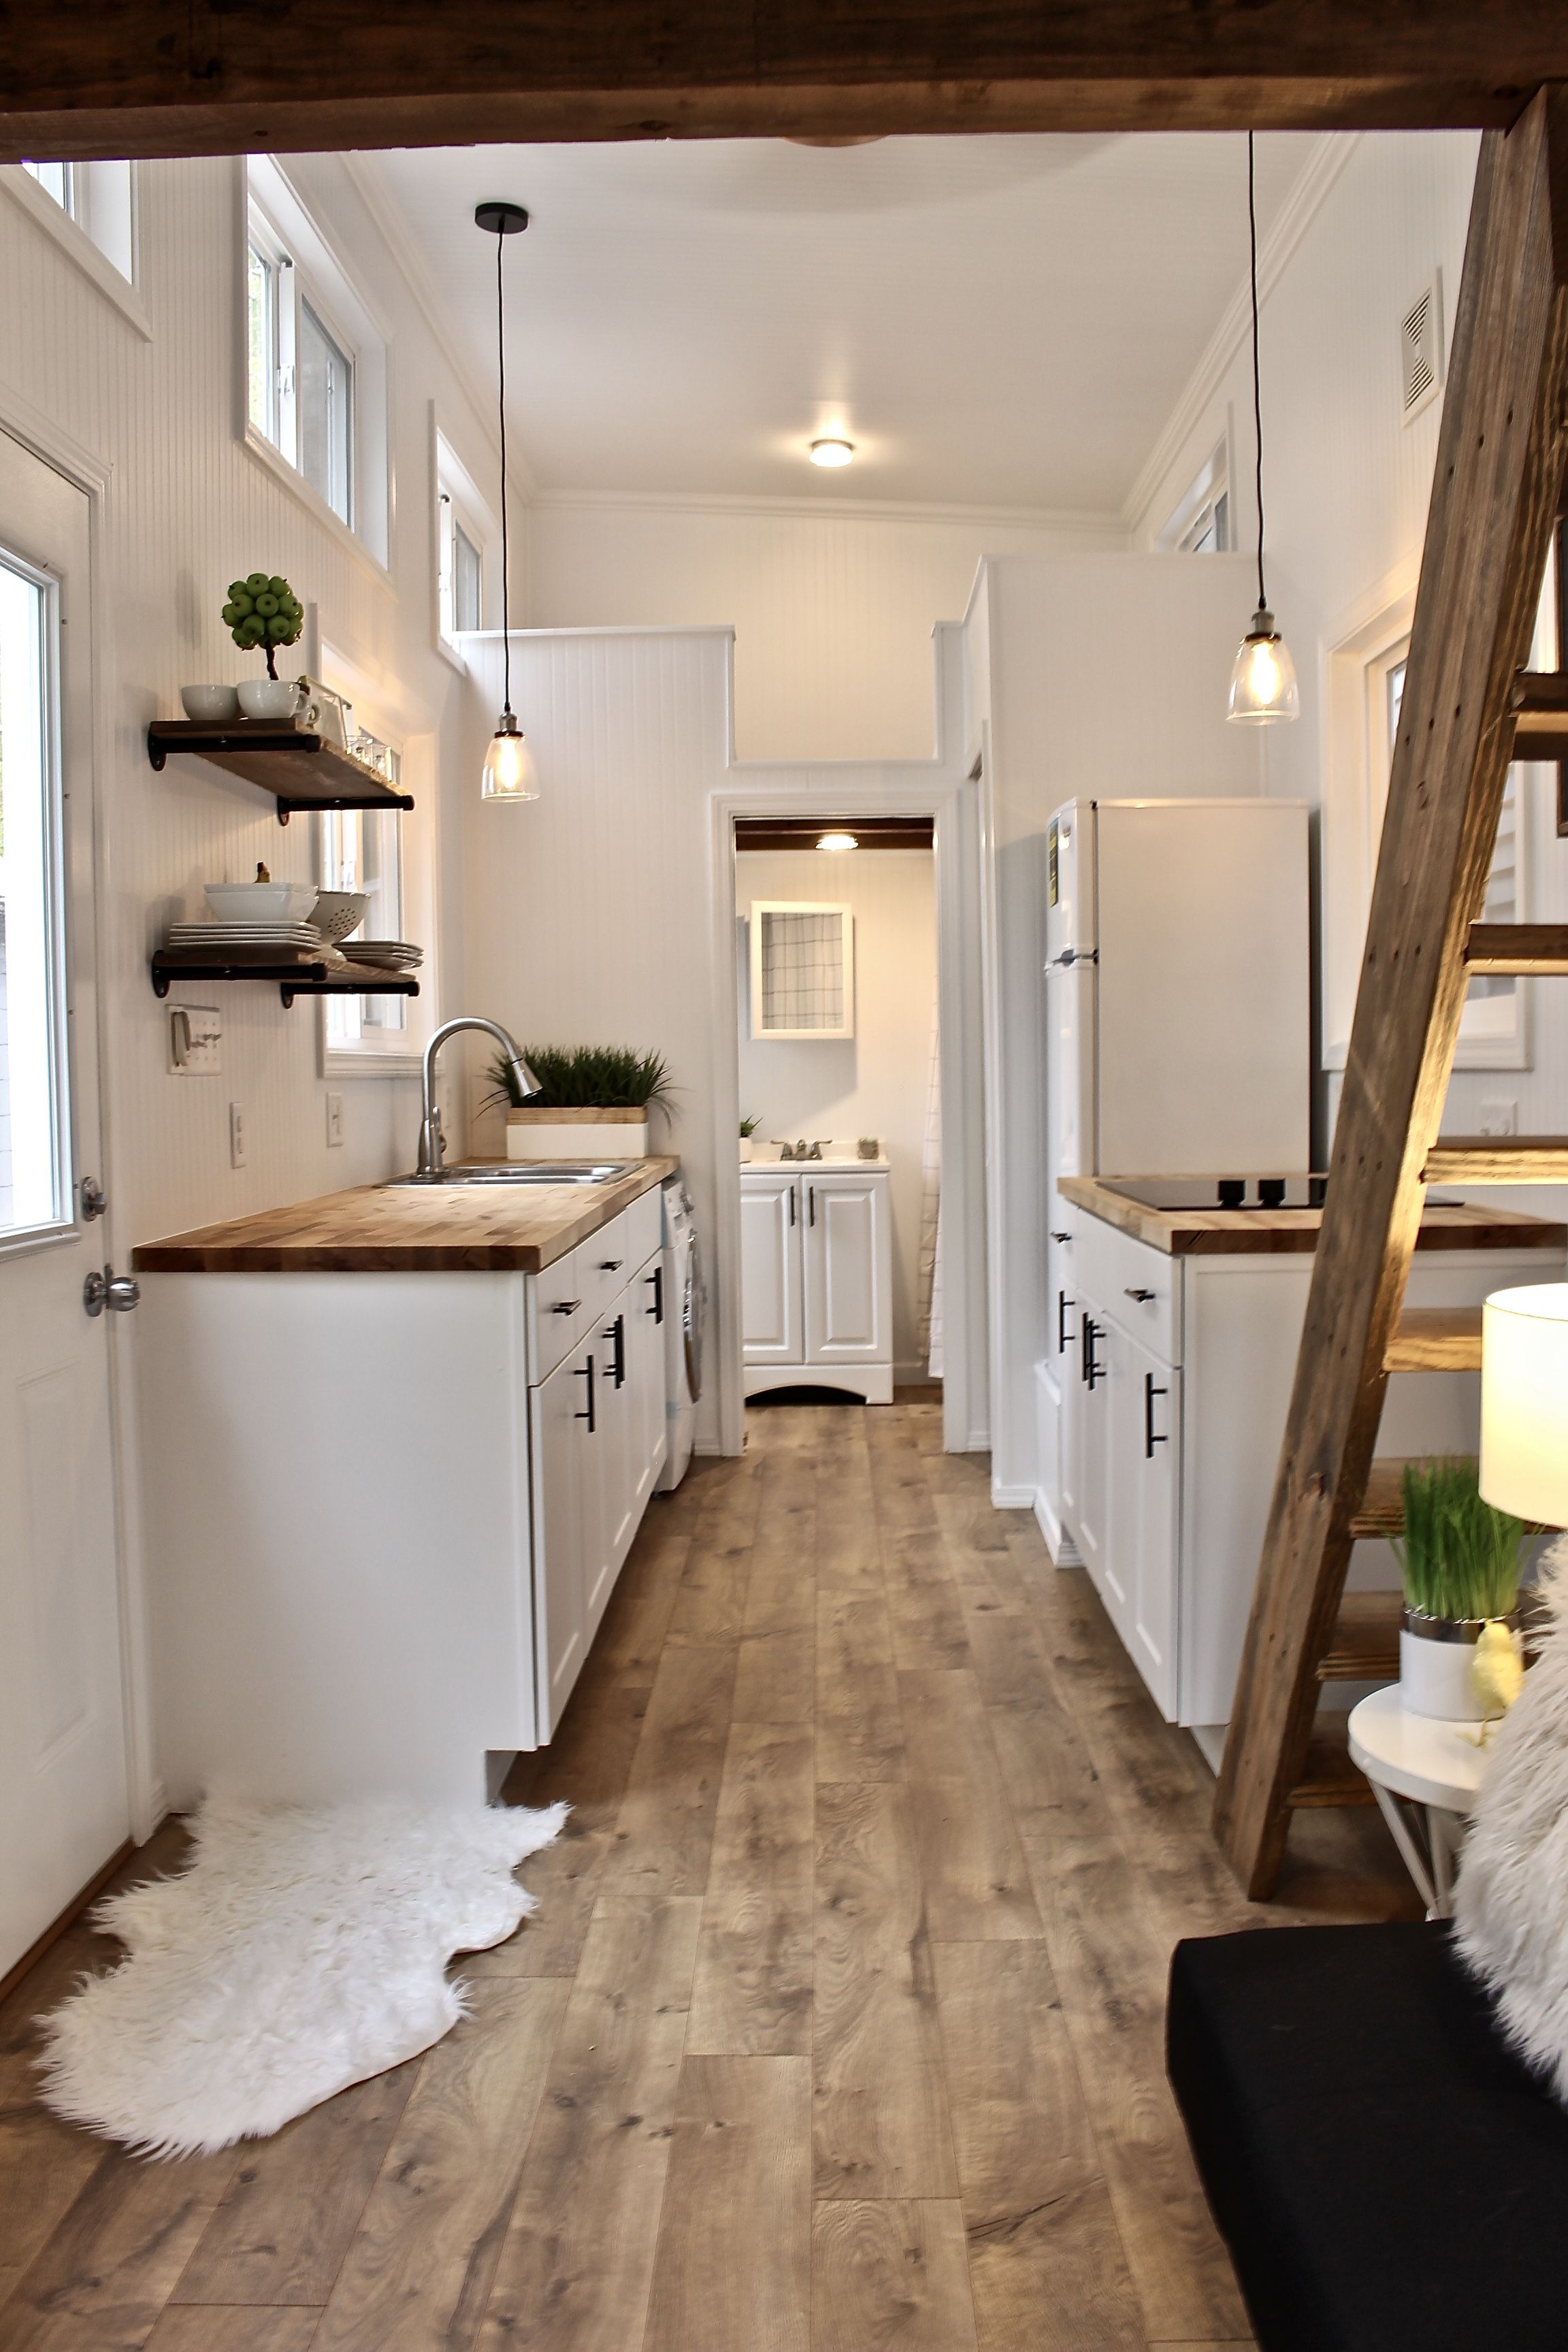 26' Chateau Shack Tiny Home on Wheels #tinyhomes